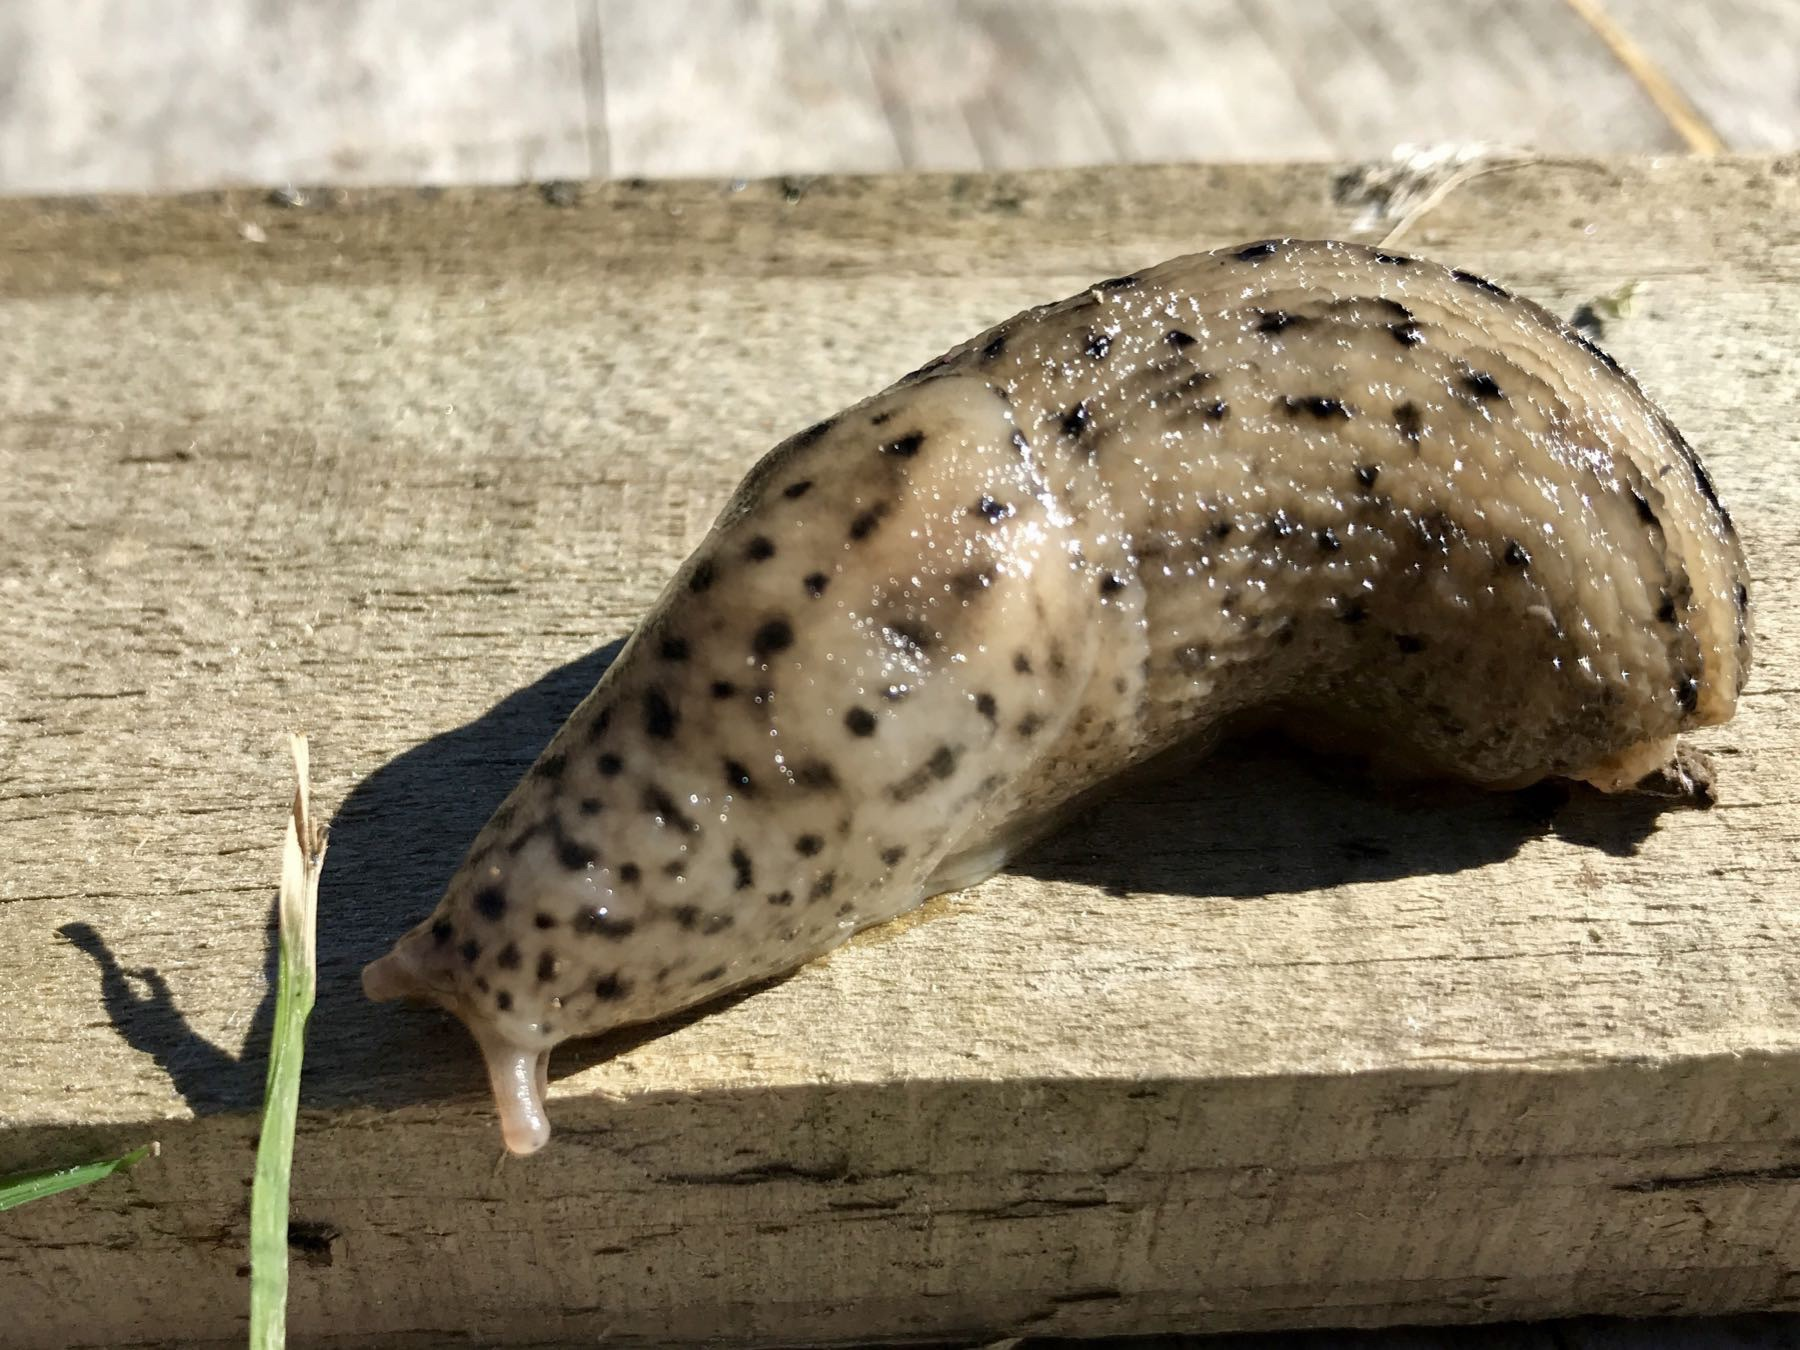 Fat pale brown slug with black spots and dots.